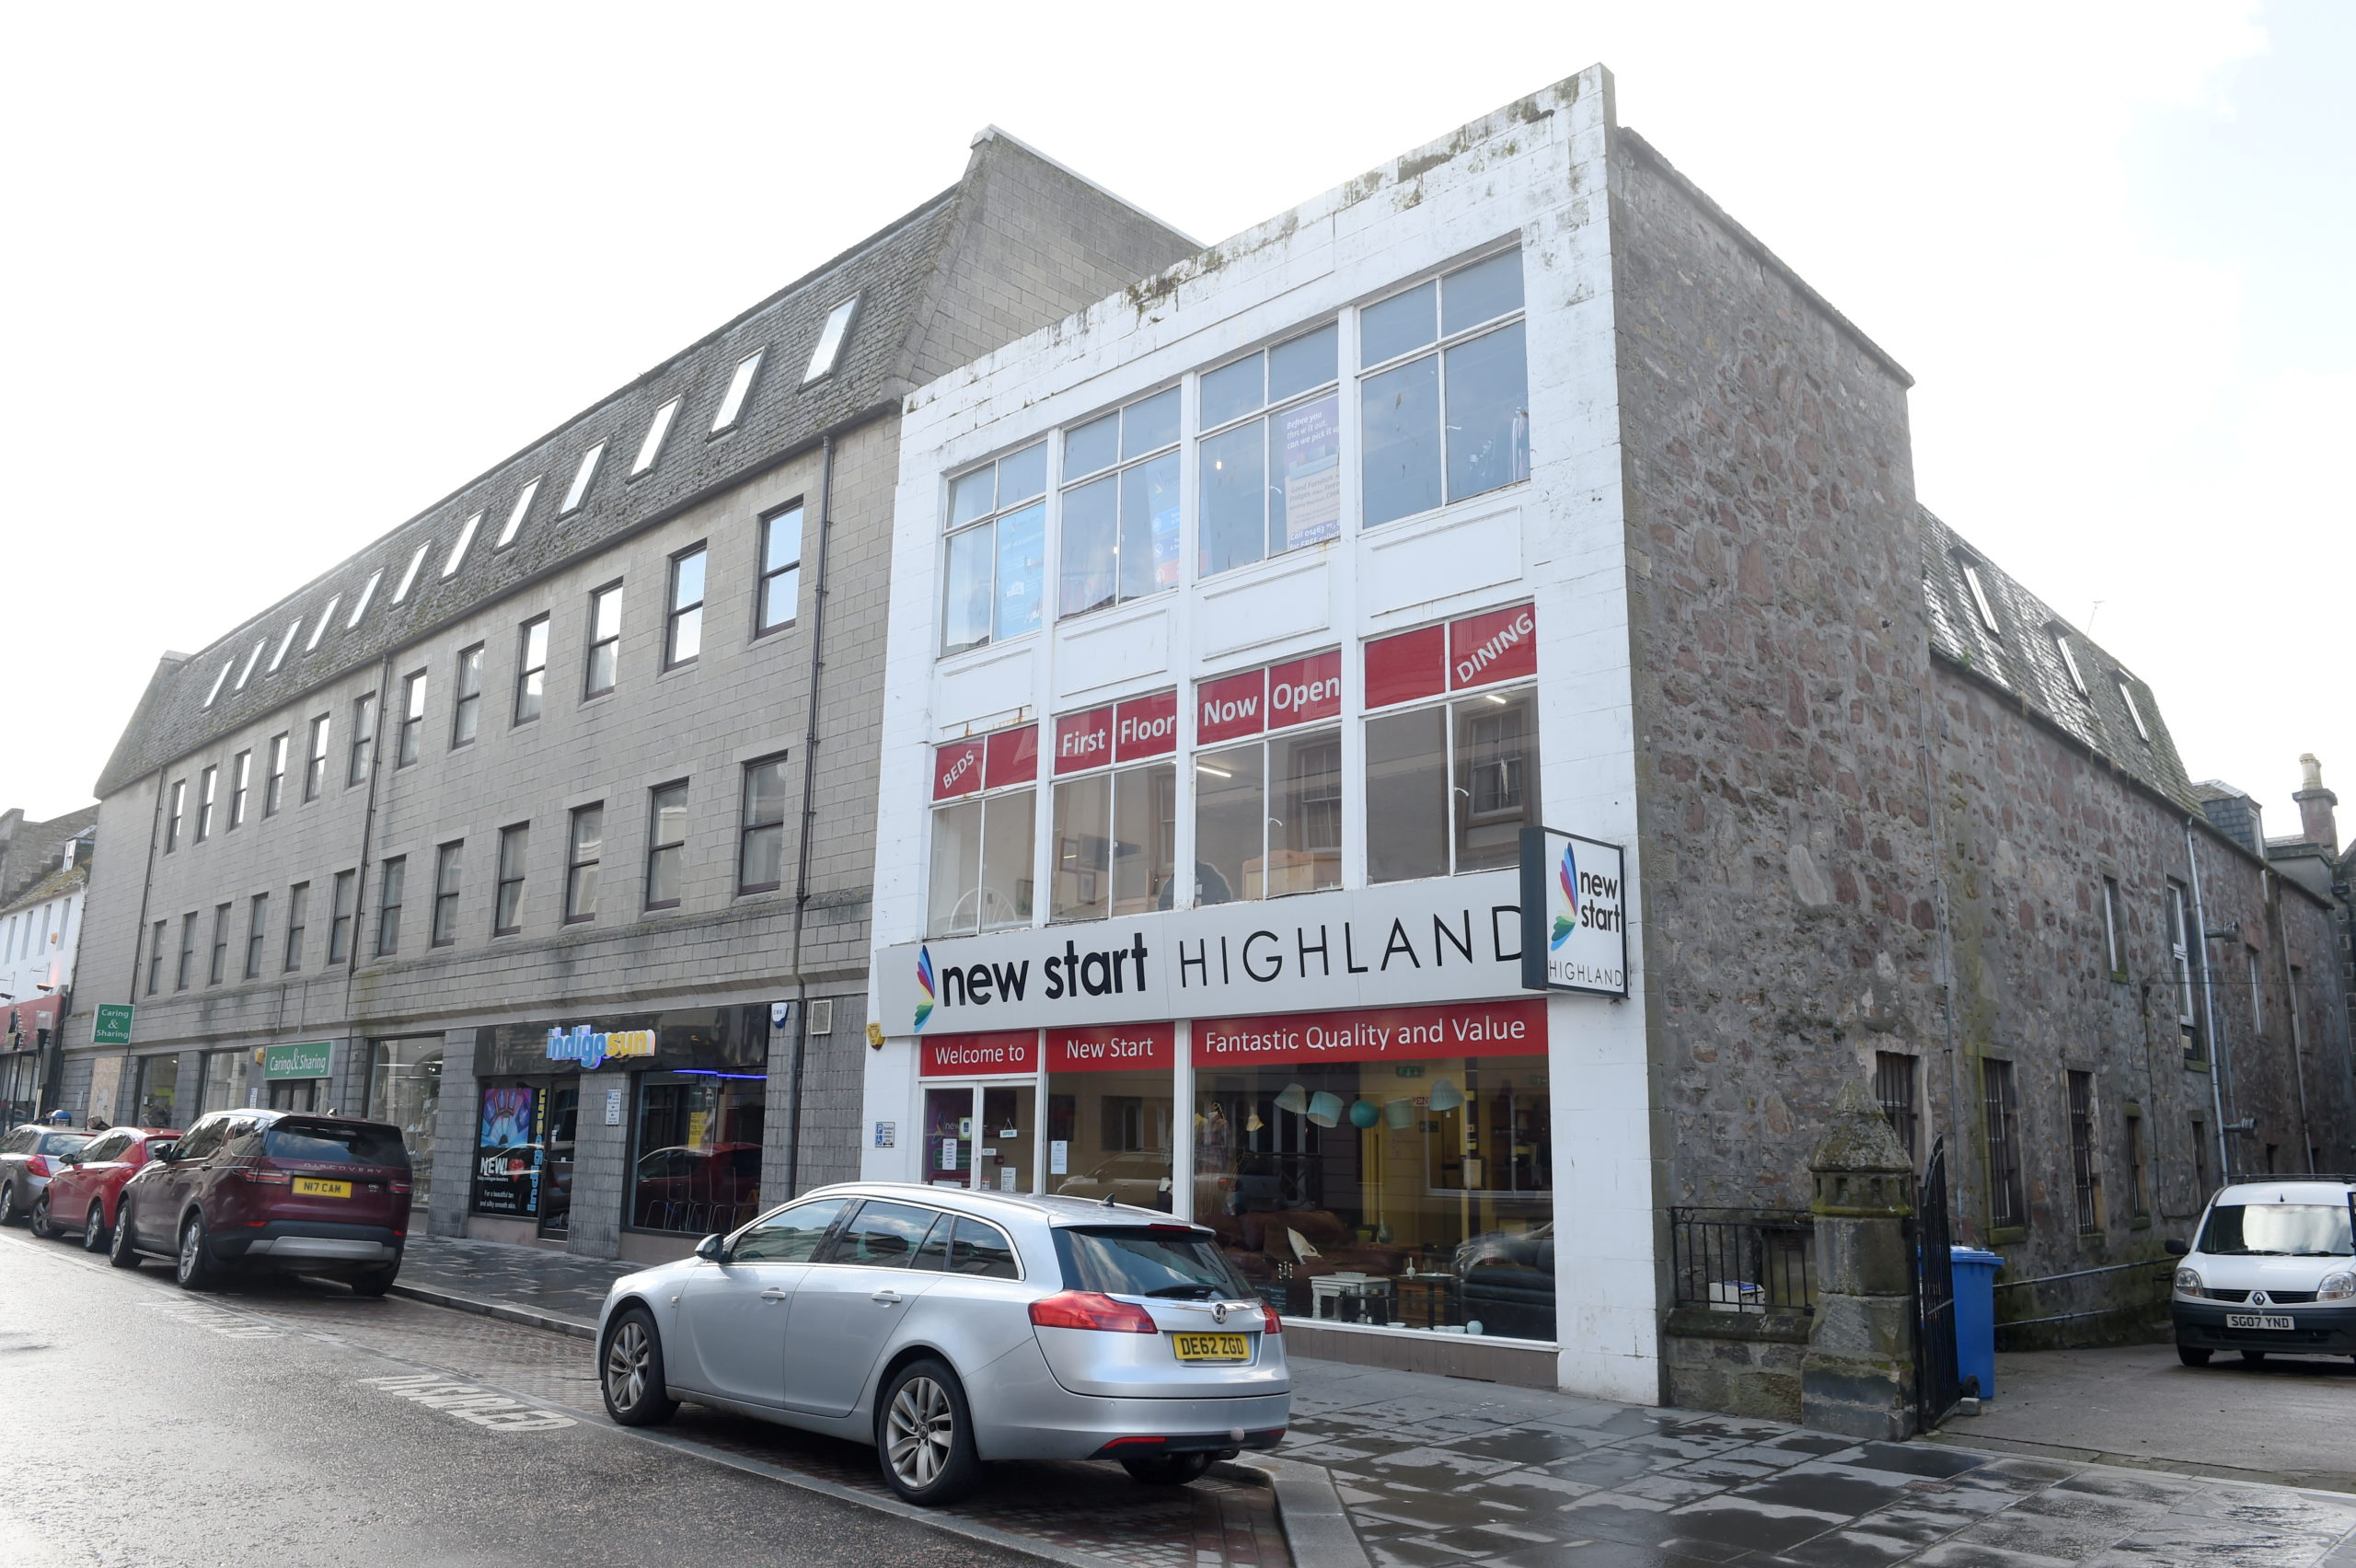 The New Start Highland building in Church Street, Inverness. Picture by Sandy McCook.